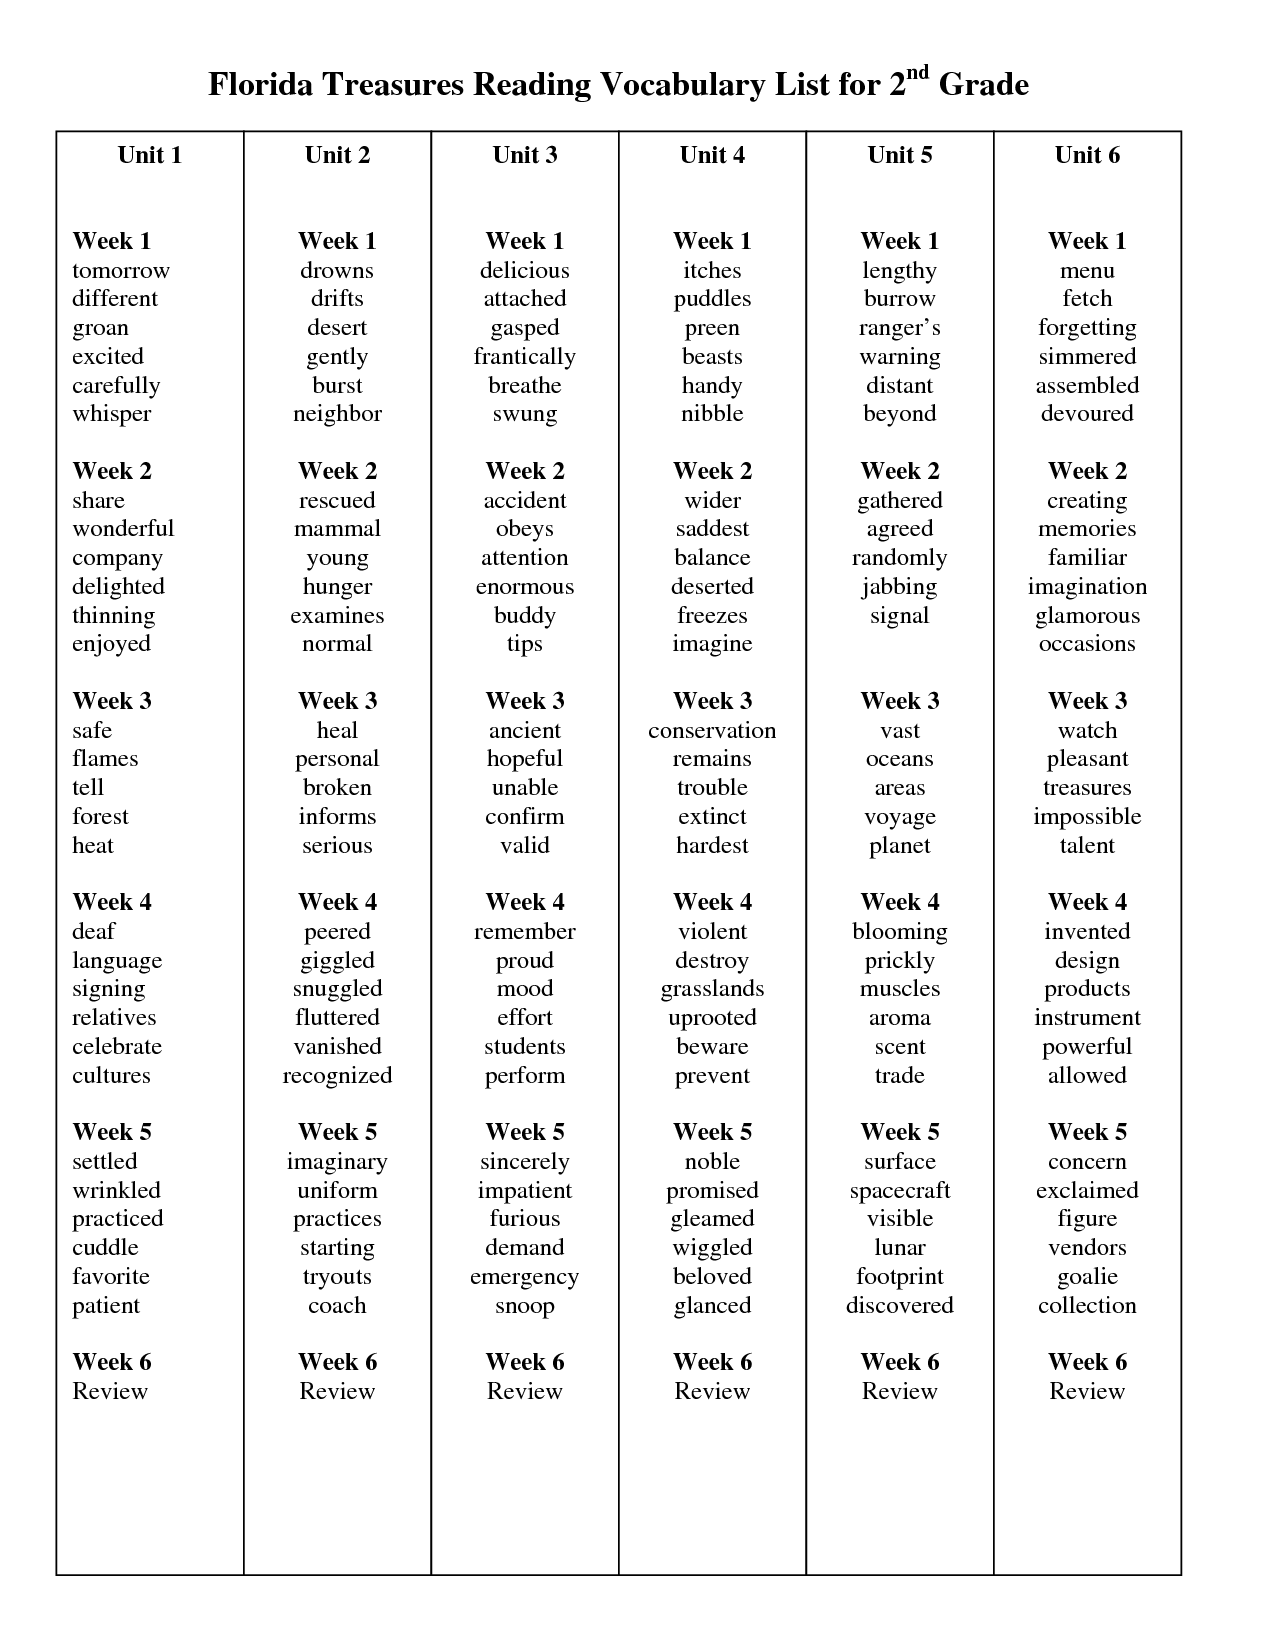 Worksheets Vocabulary In Grade 2 list of core words second grade florida treasures reading vocabulary for 2 grade